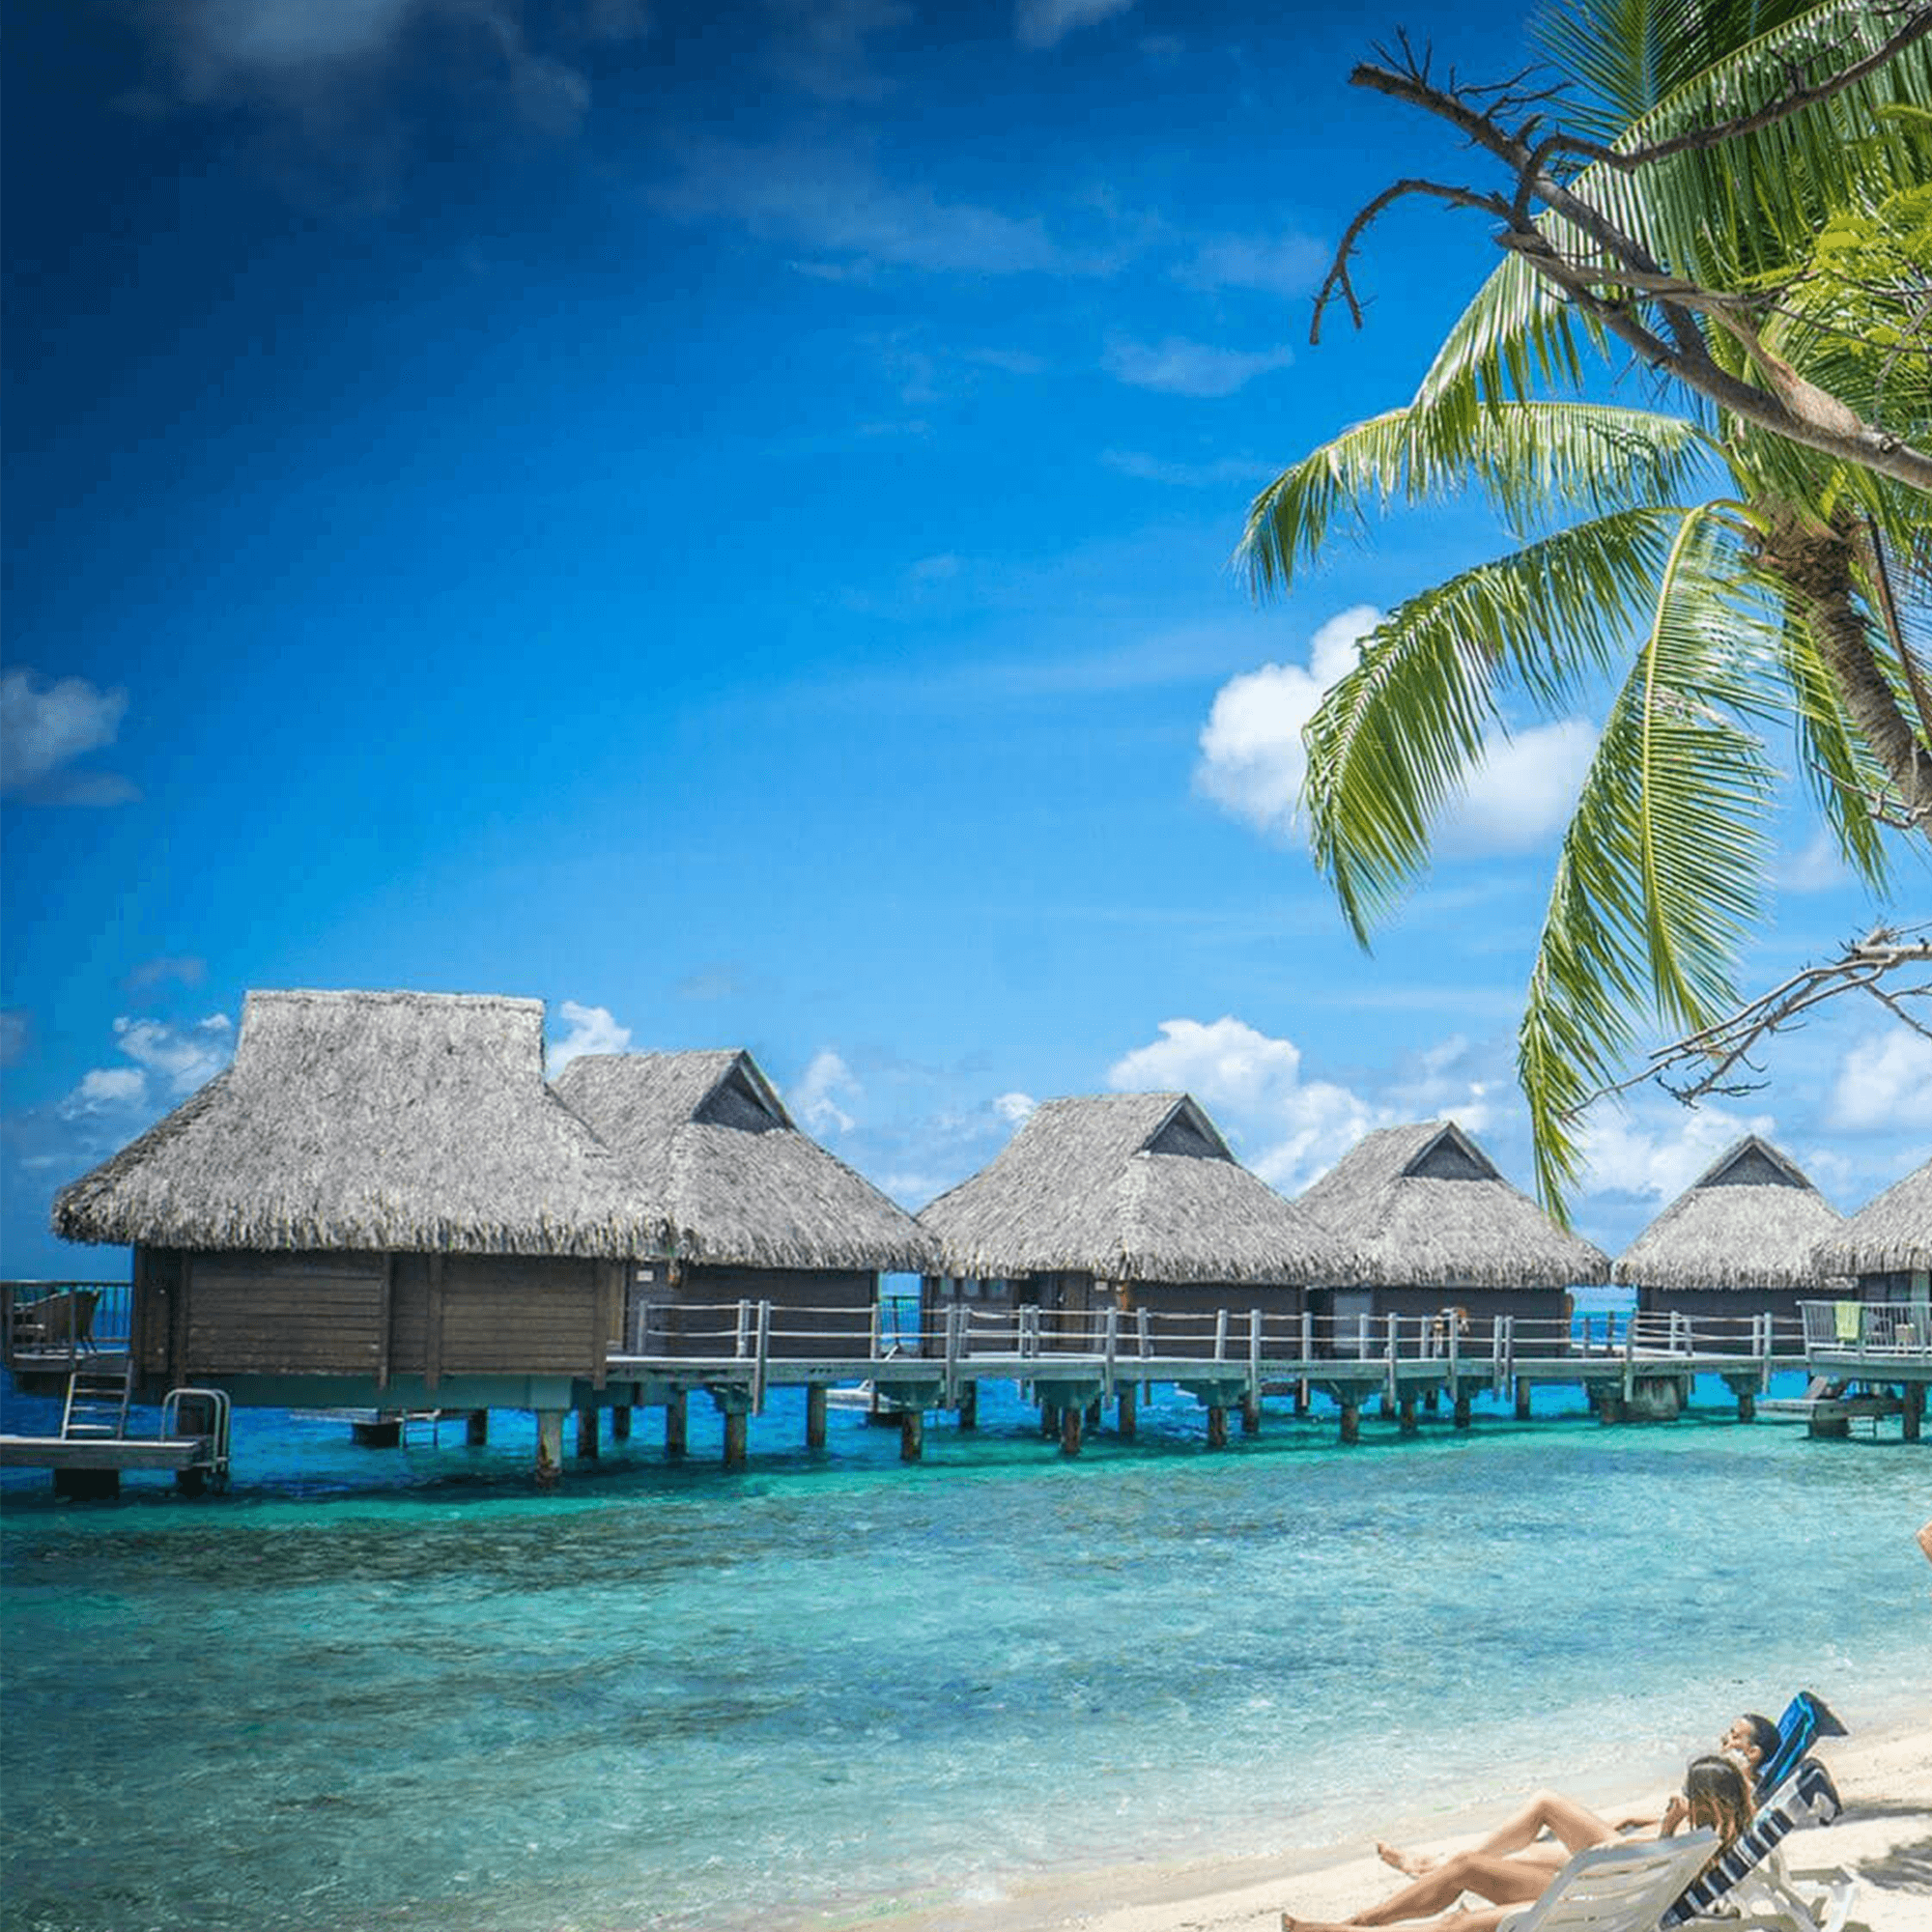 Sunny beach with huts in the ocean